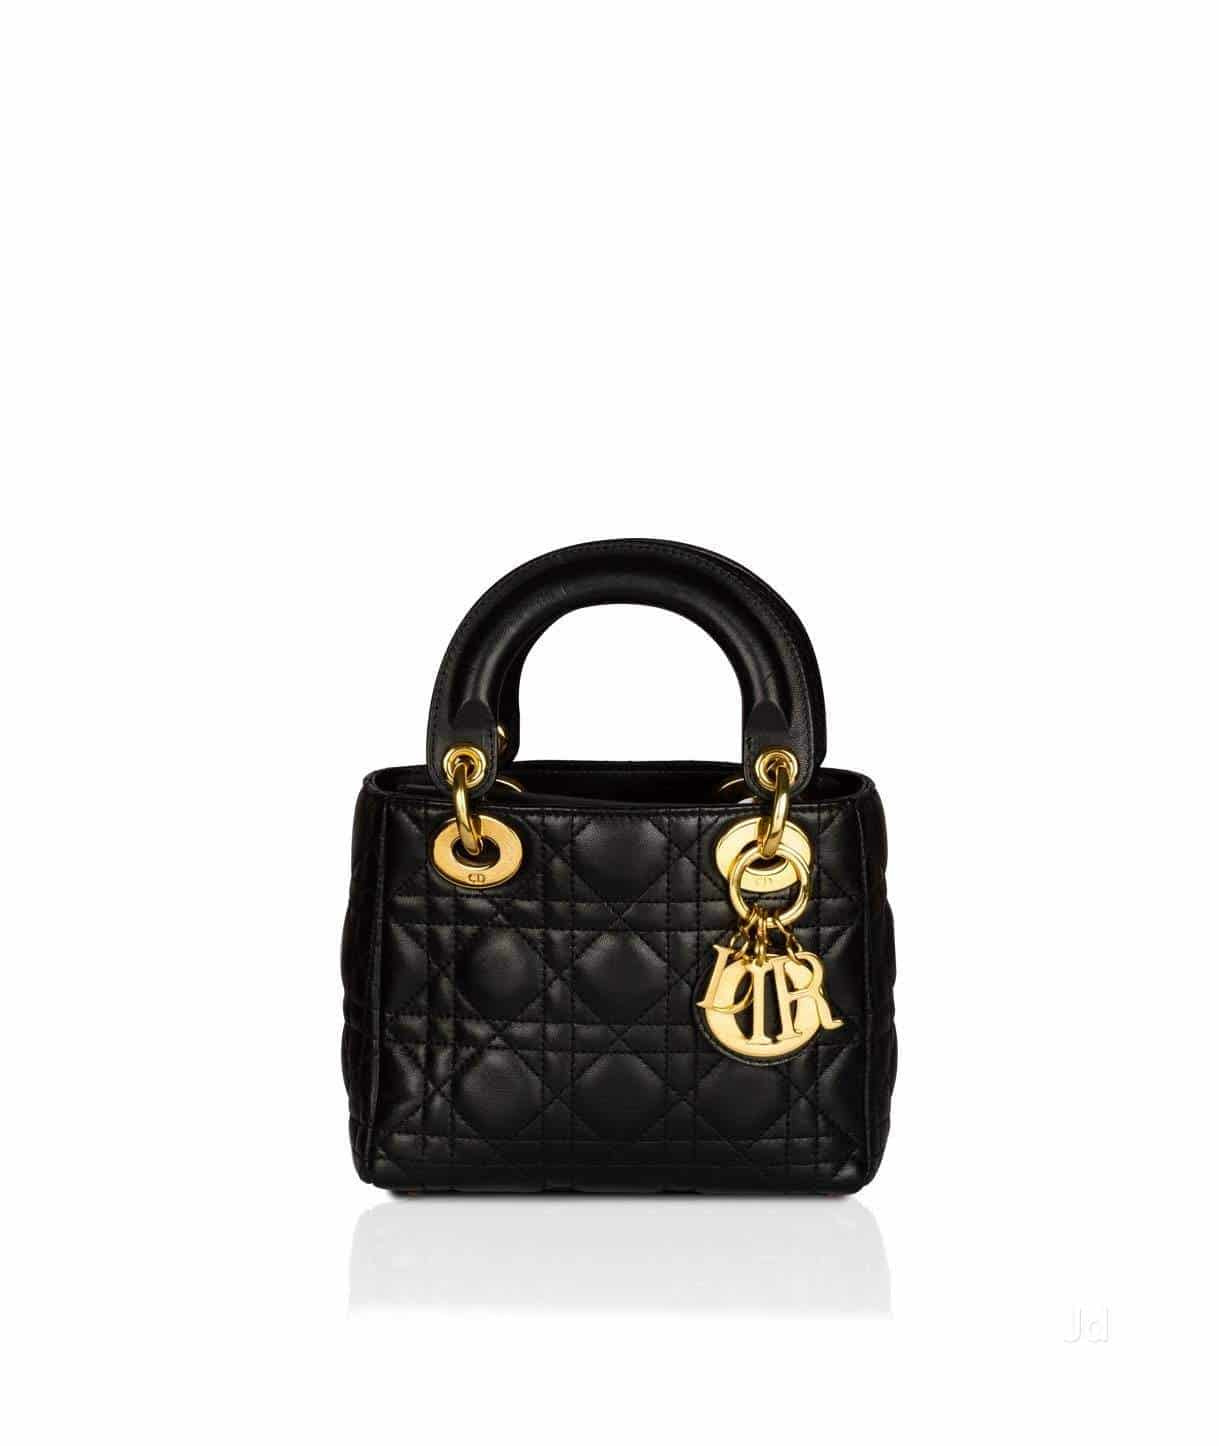 1387c80caf4e0 ... Lady Dior Lambskin Nano - Confidential Couture Pre Owned Luxury Bags  Photos